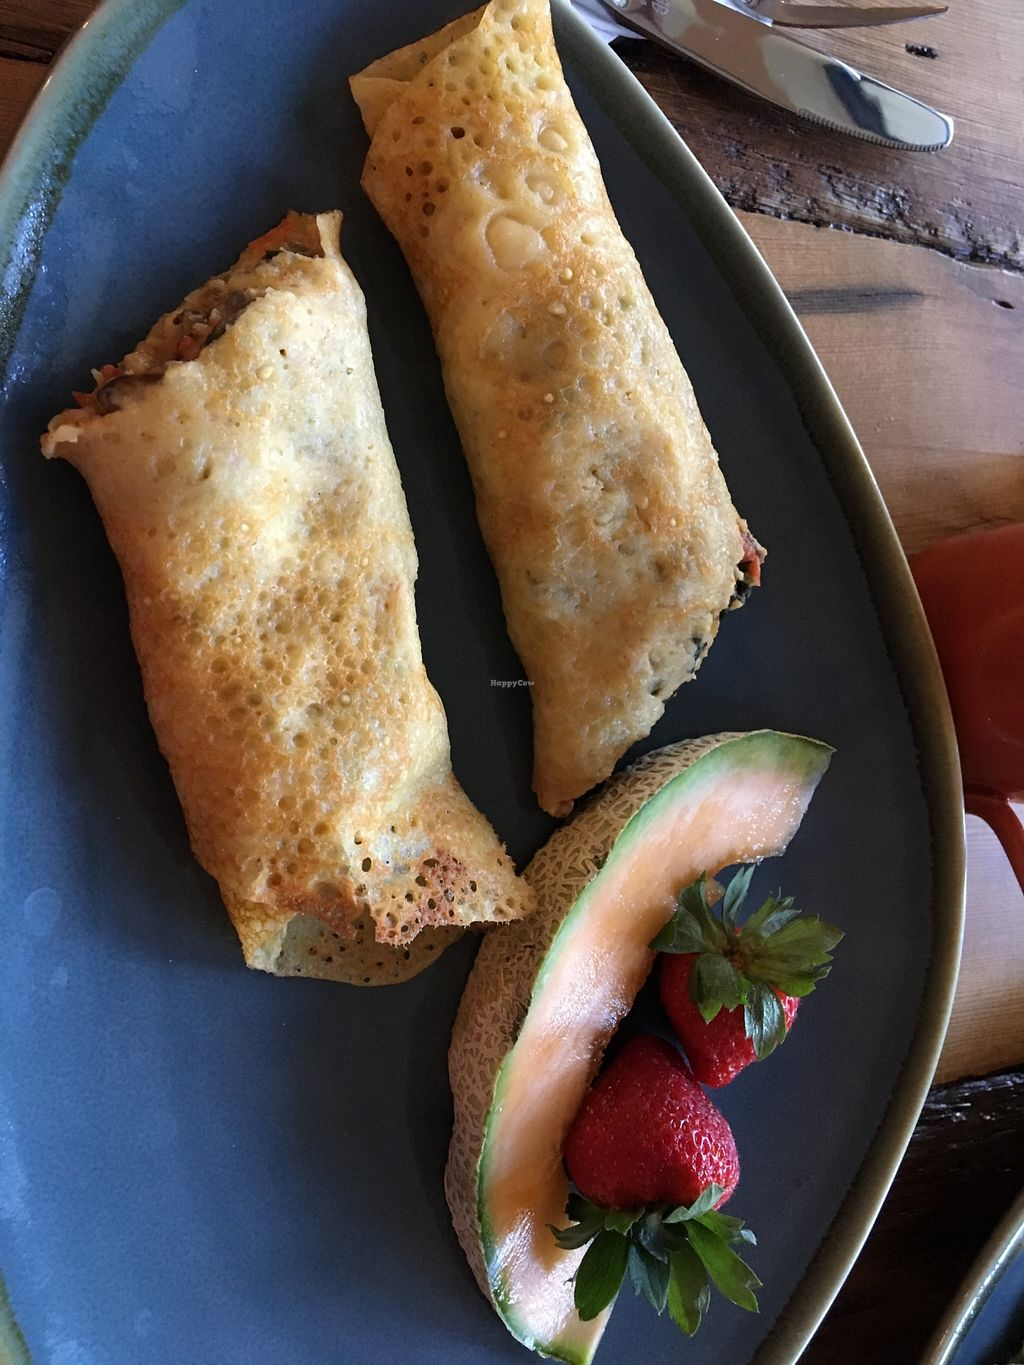 """Photo of Kind Crepes  by <a href=""""/members/profile/Michael%20Isavegan"""">Michael Isavegan</a> <br/>Eastern Crepes <br/> November 13, 2017  - <a href='/contact/abuse/image/104735/325391'>Report</a>"""